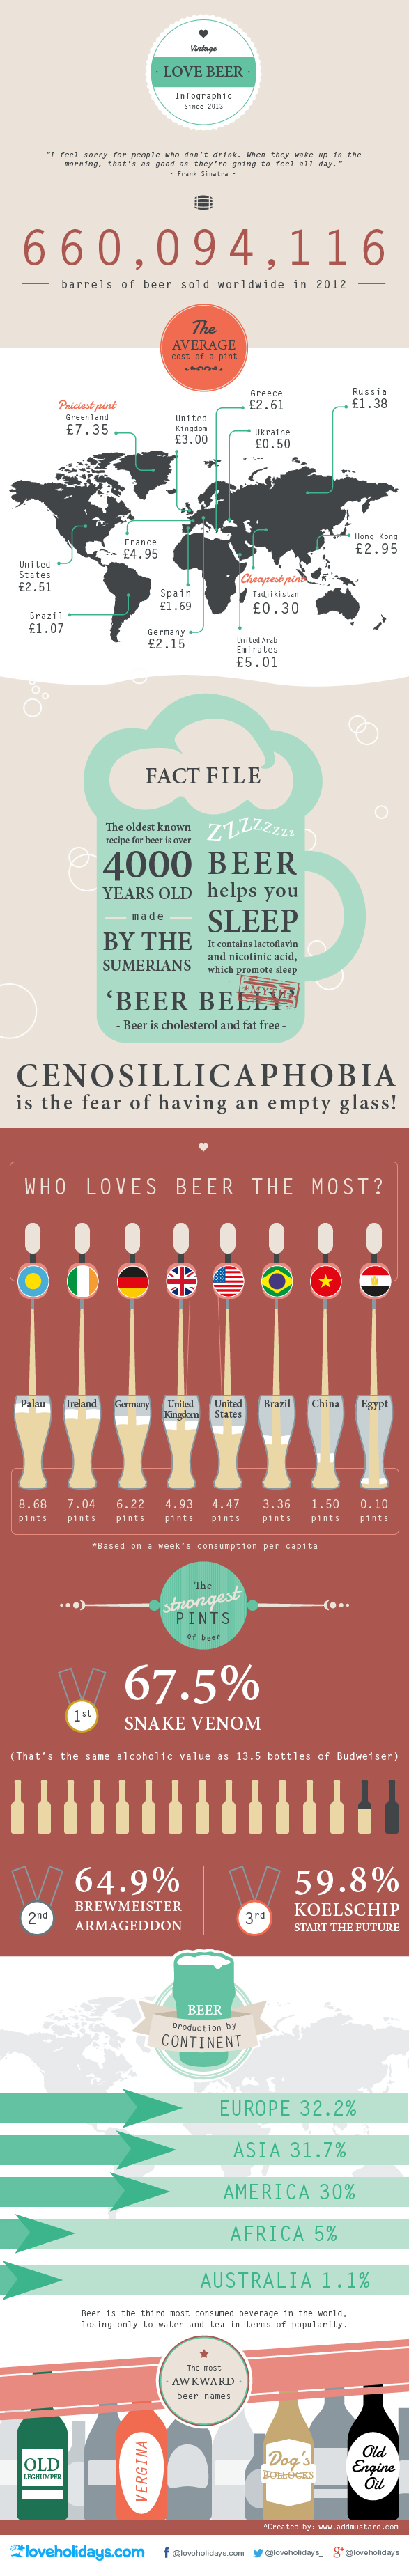 Who Loves Beer The Most Infographic Beer Infographic Beer Beer Facts